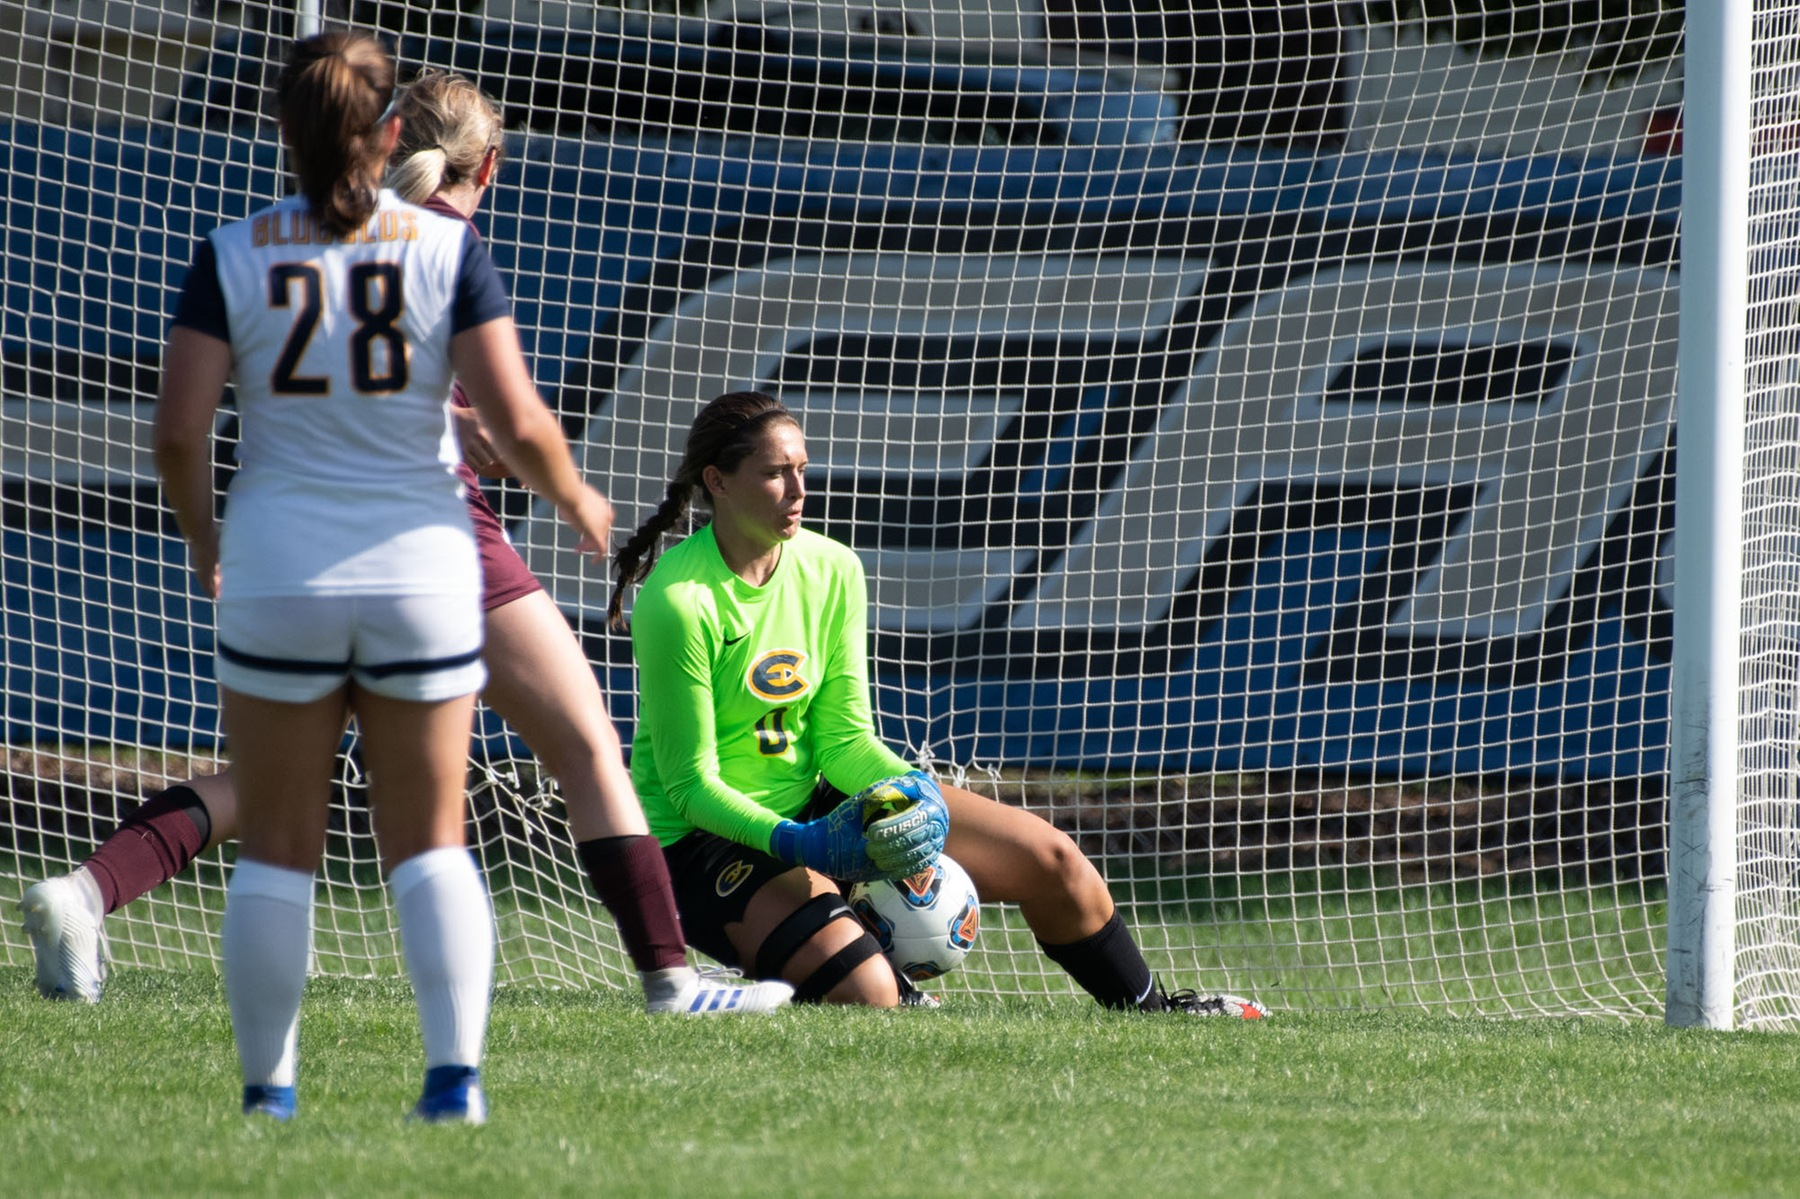 Women's Soccer records eighth shutout of the season with 2-0 win over Falcons